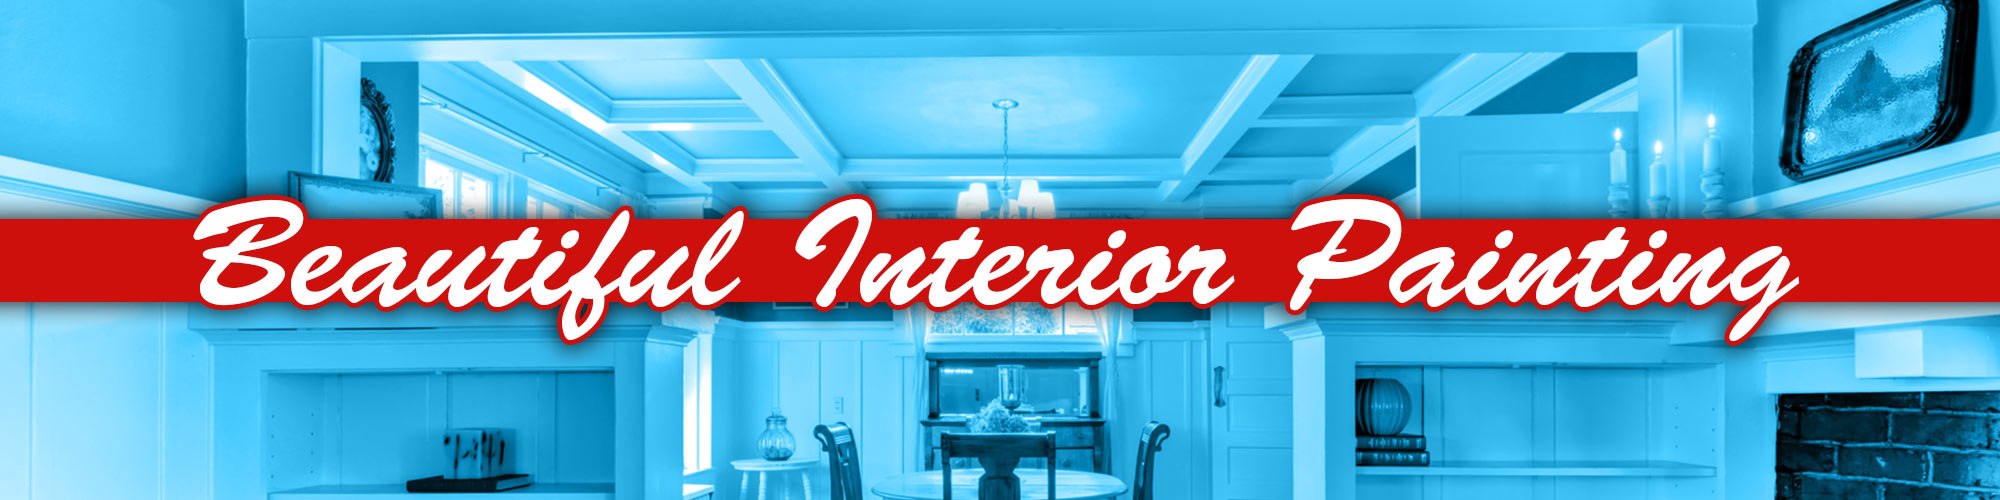 interior painting richmond pa